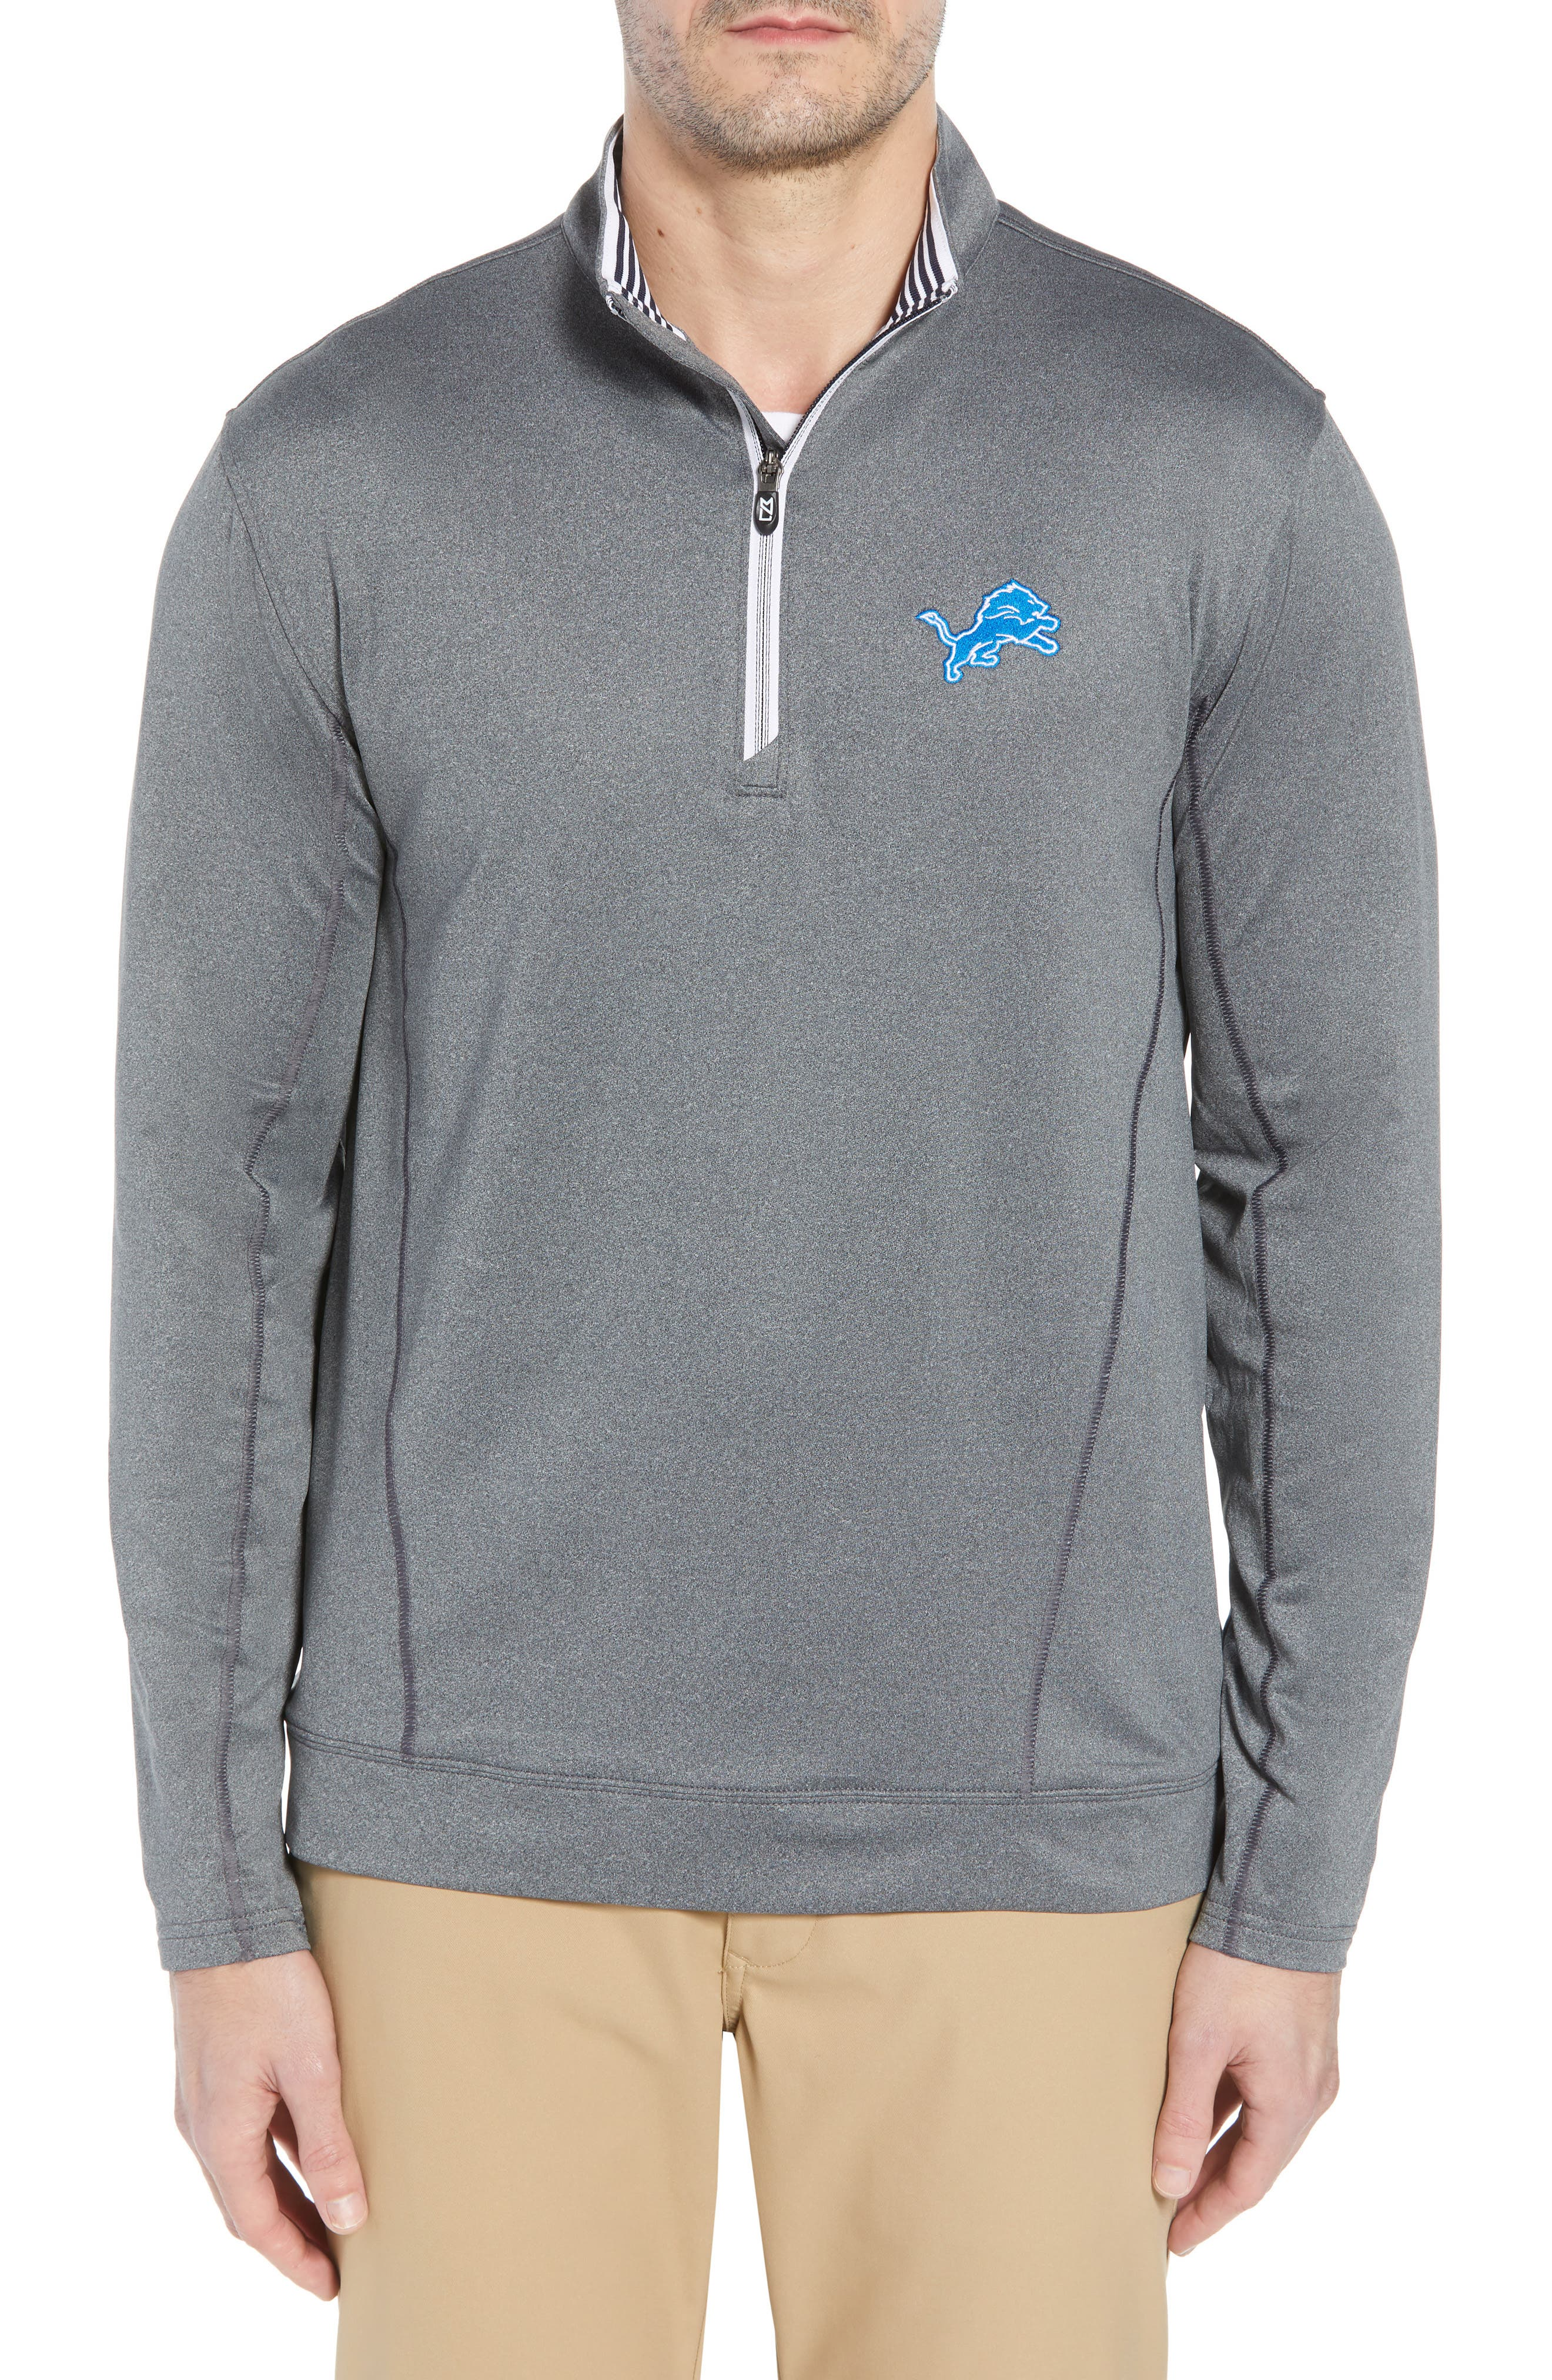 Endurance Detroit Lions Regular Fit Pullover,                             Main thumbnail 1, color,                             CHARCOAL HEATHER